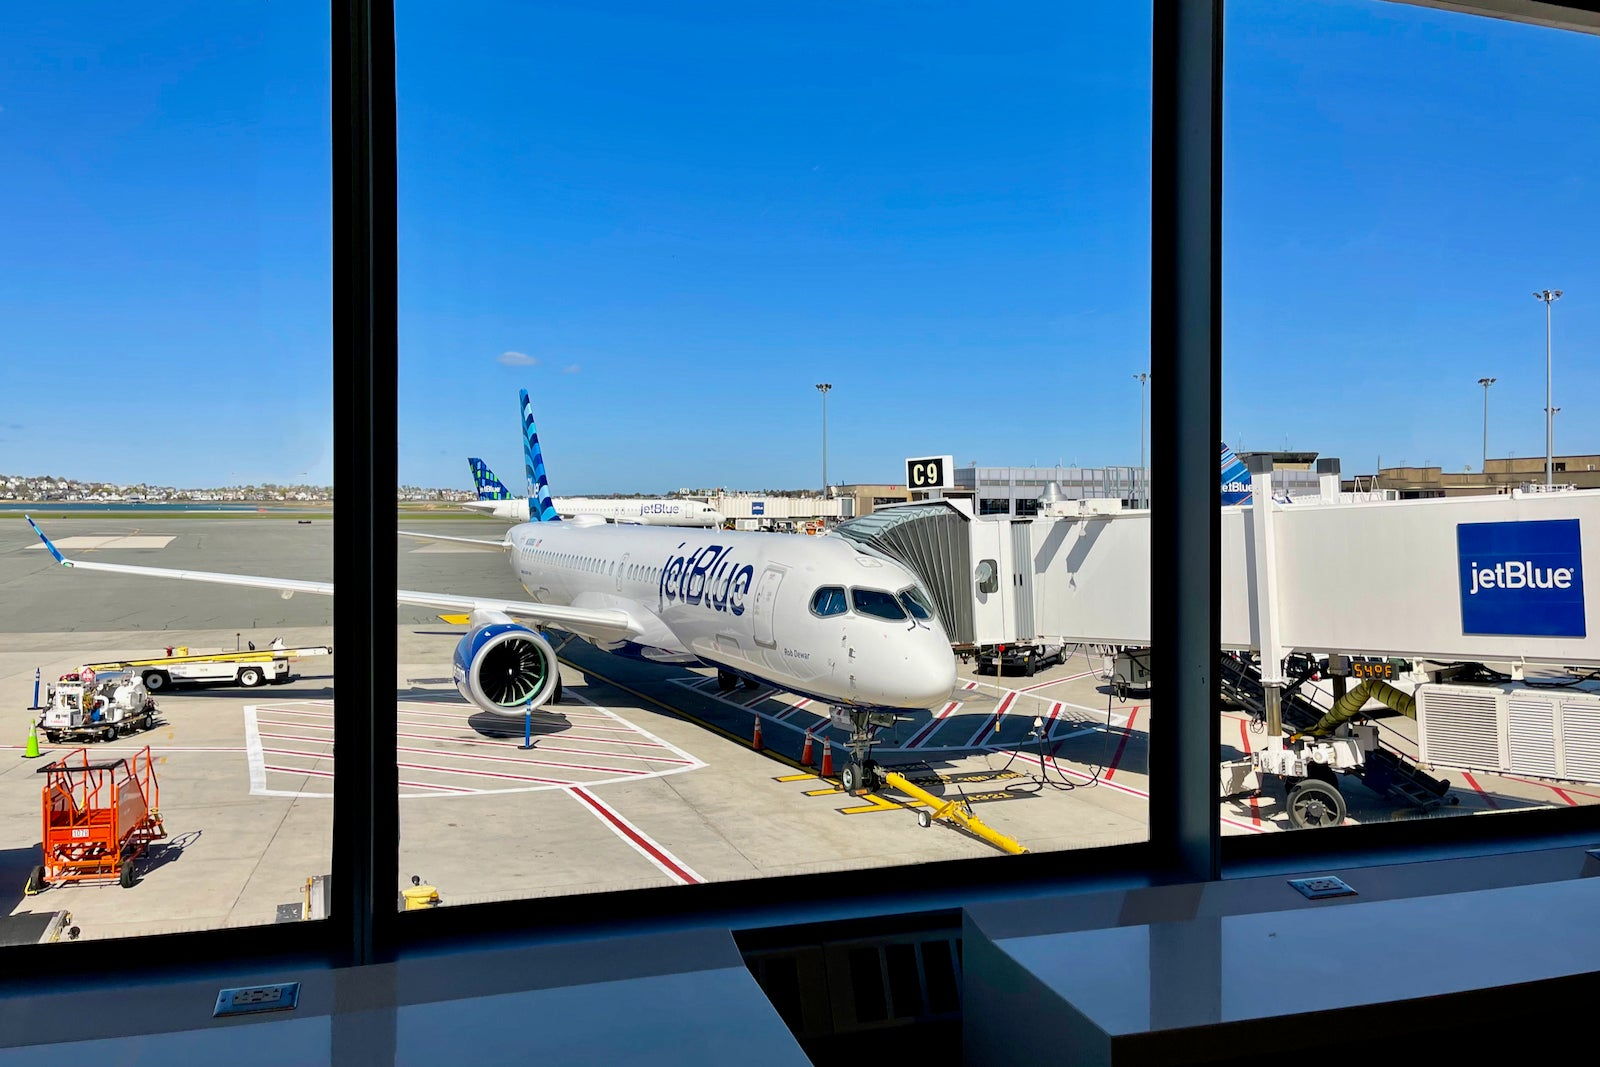 JetBlue cuts a whopping 27 routes in sweeping network update - The Points Guy